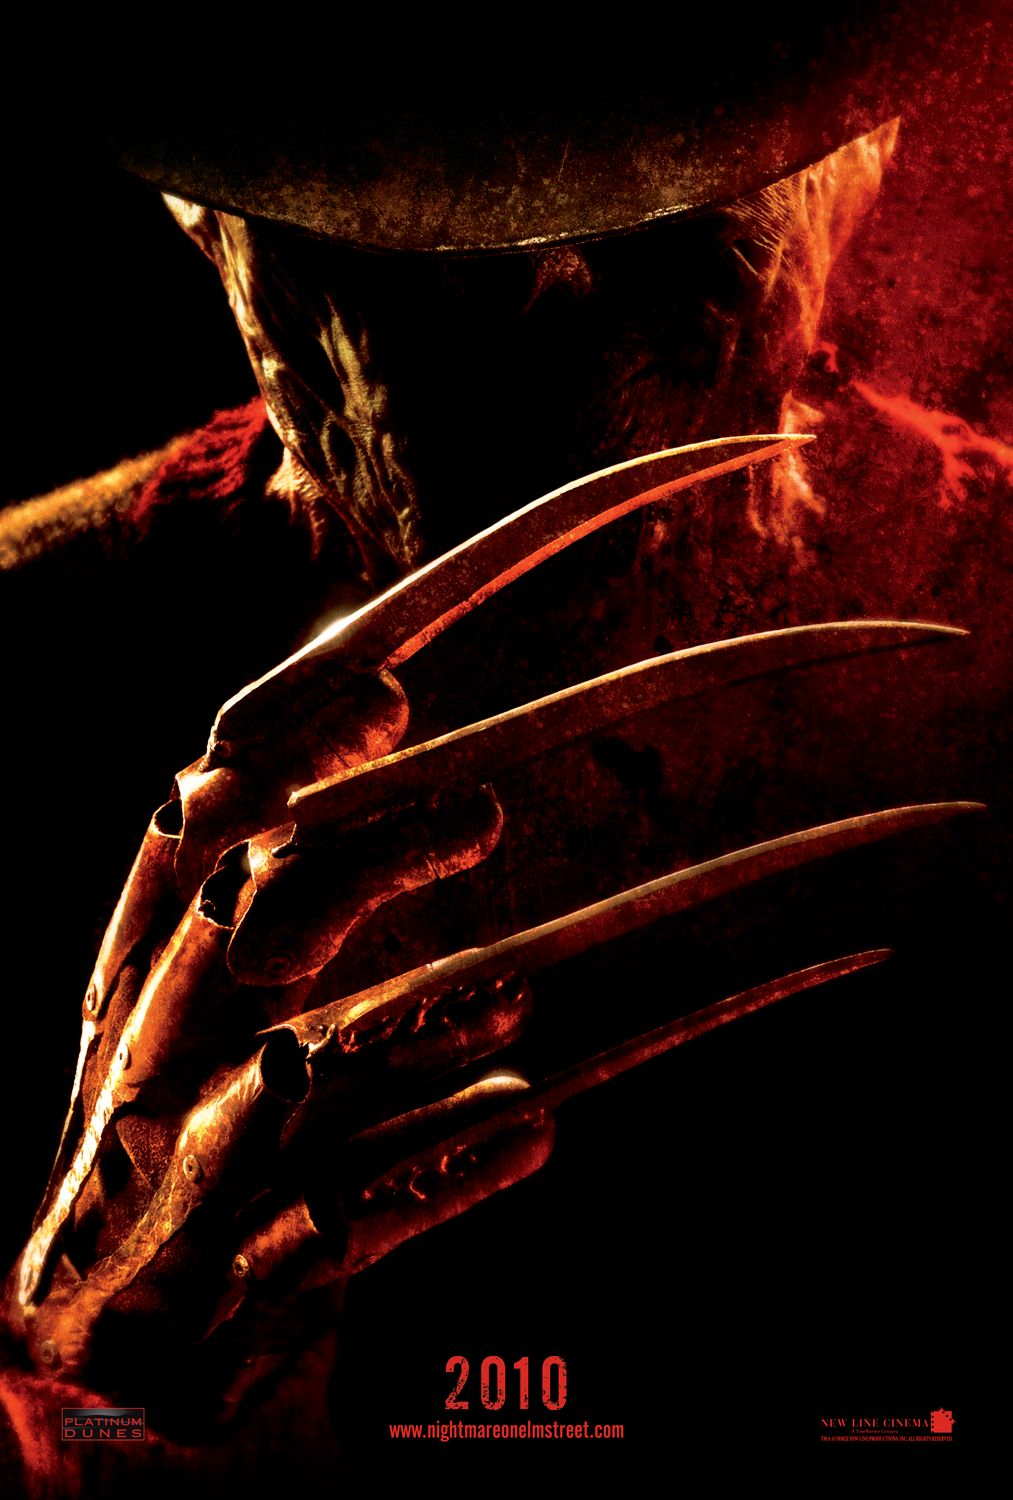 A Nightmare on Elm Street movie poster high resolution.jpg